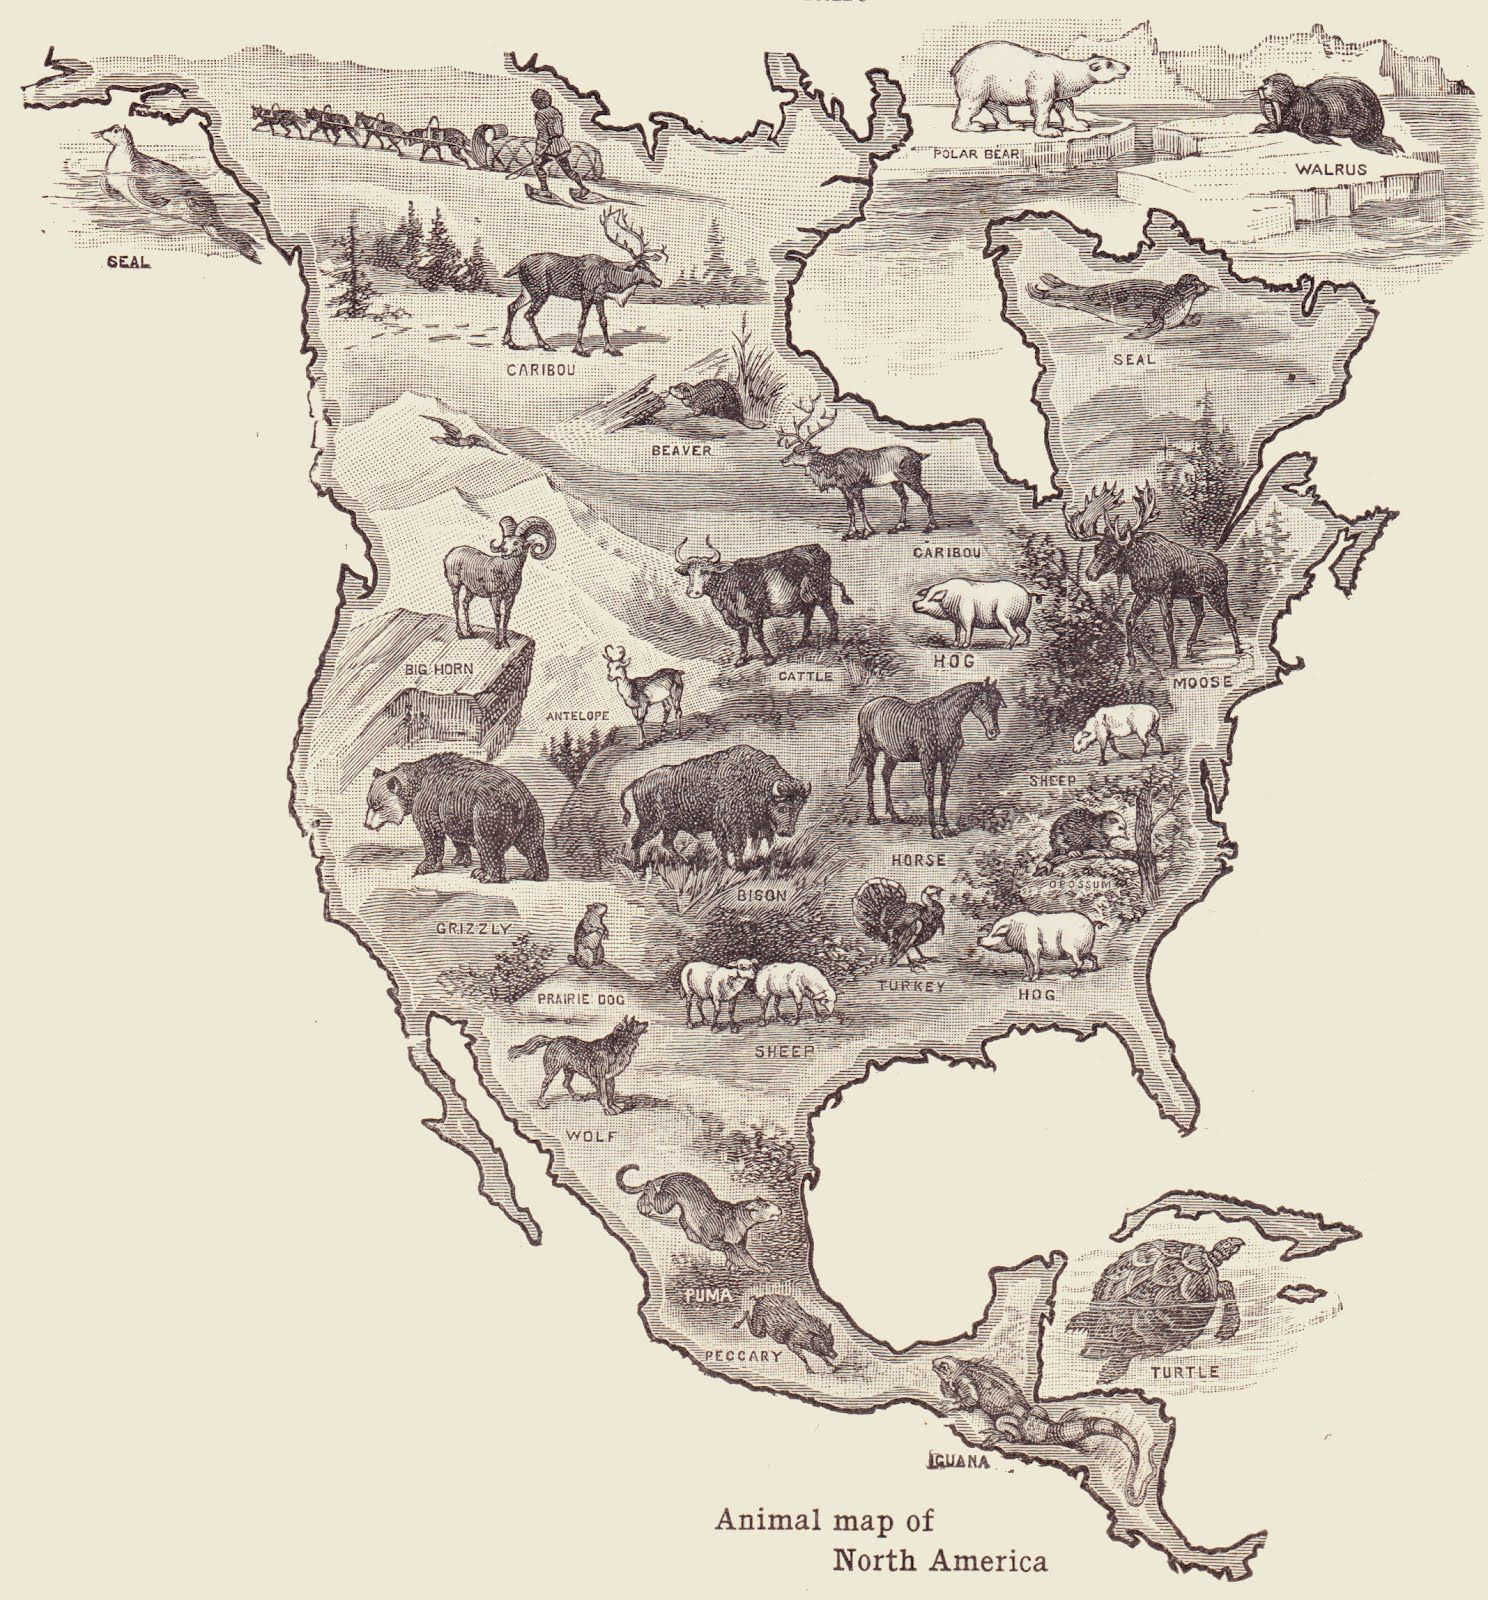 Animals of North America, from a 1920 geography textbook